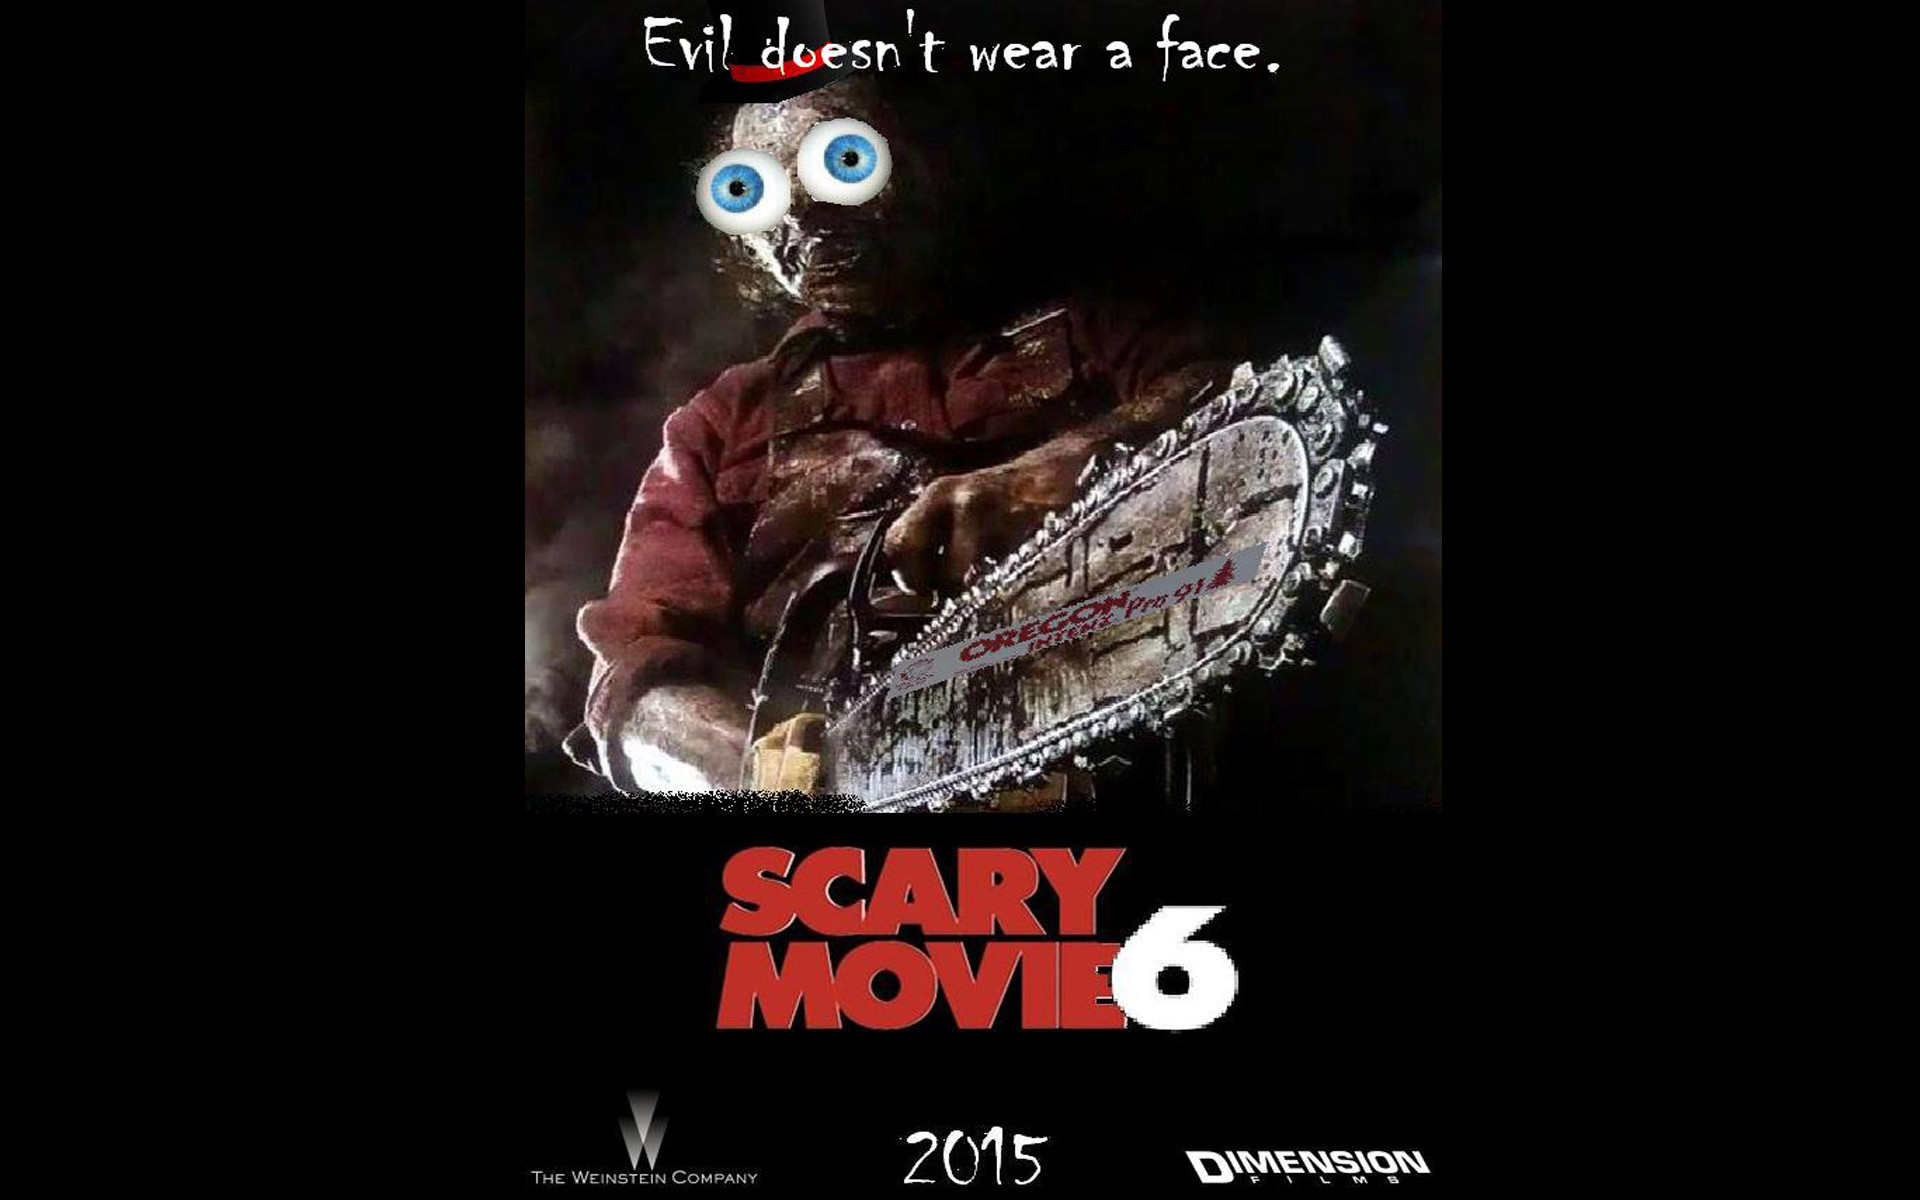 Scary Movie 6 poster · Desktop WallpapersScary MoviesPoster